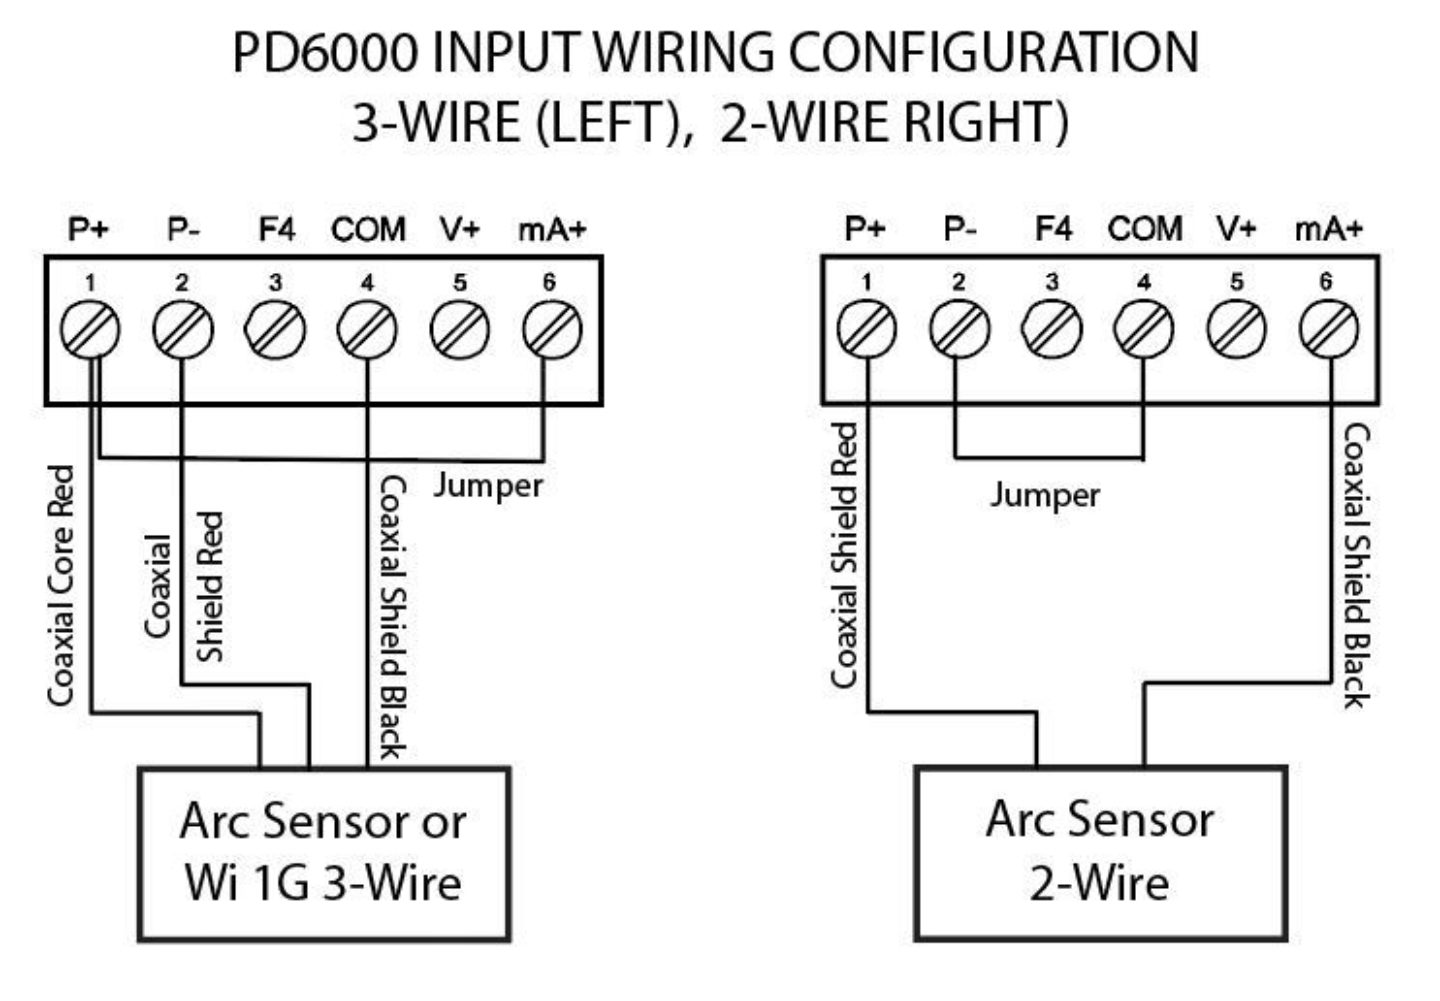 medium resolution of 3 wire sensor wiring is required for visiferm products as well as the addition of the wi 1g bluetooth adapter ref 243460 to any sensor